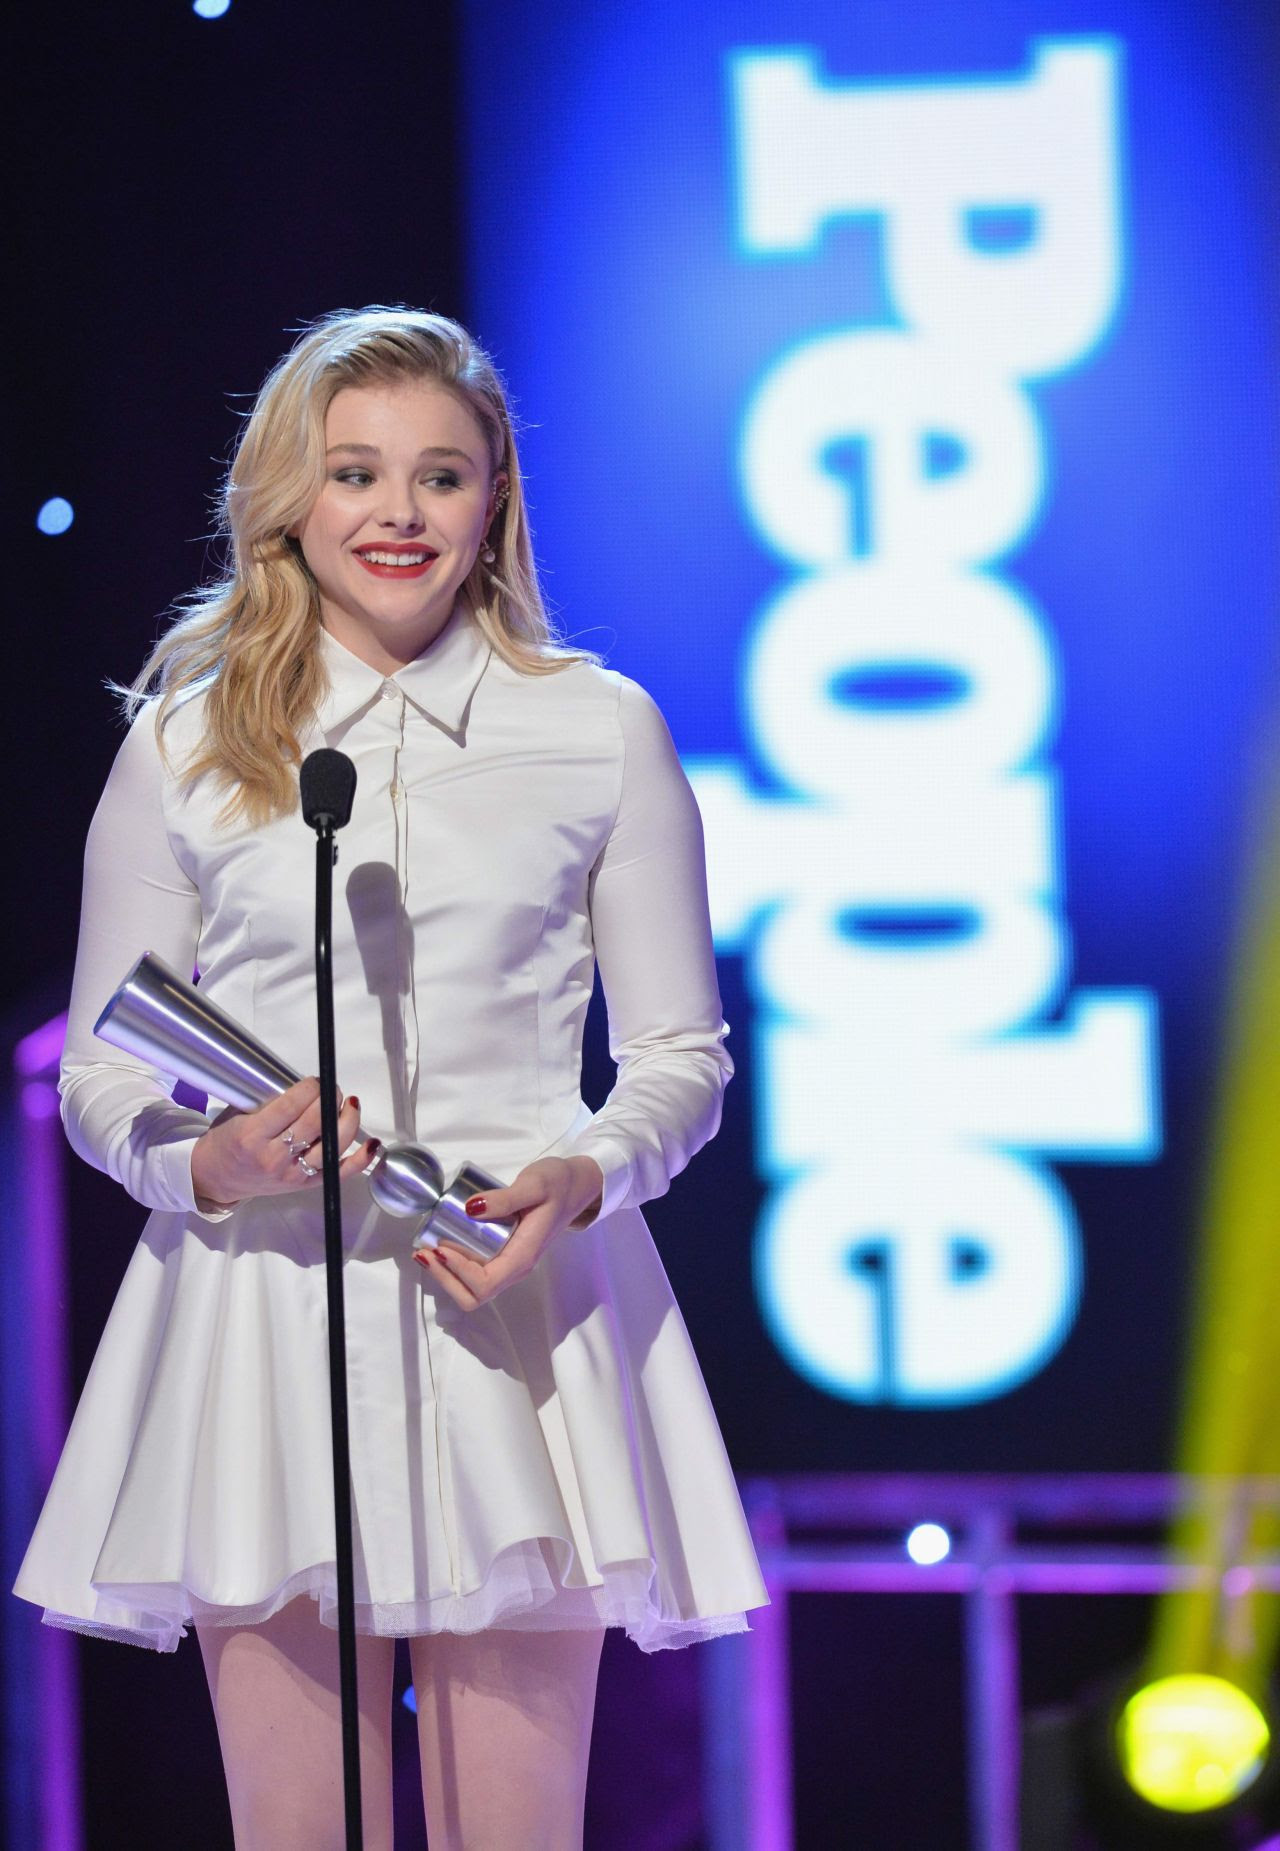 http://celebmafia.com/wp-content/uploads/2014/12/chloe-moretz-2014-people-magazine-awards-in-beverly-hills_14.jpg